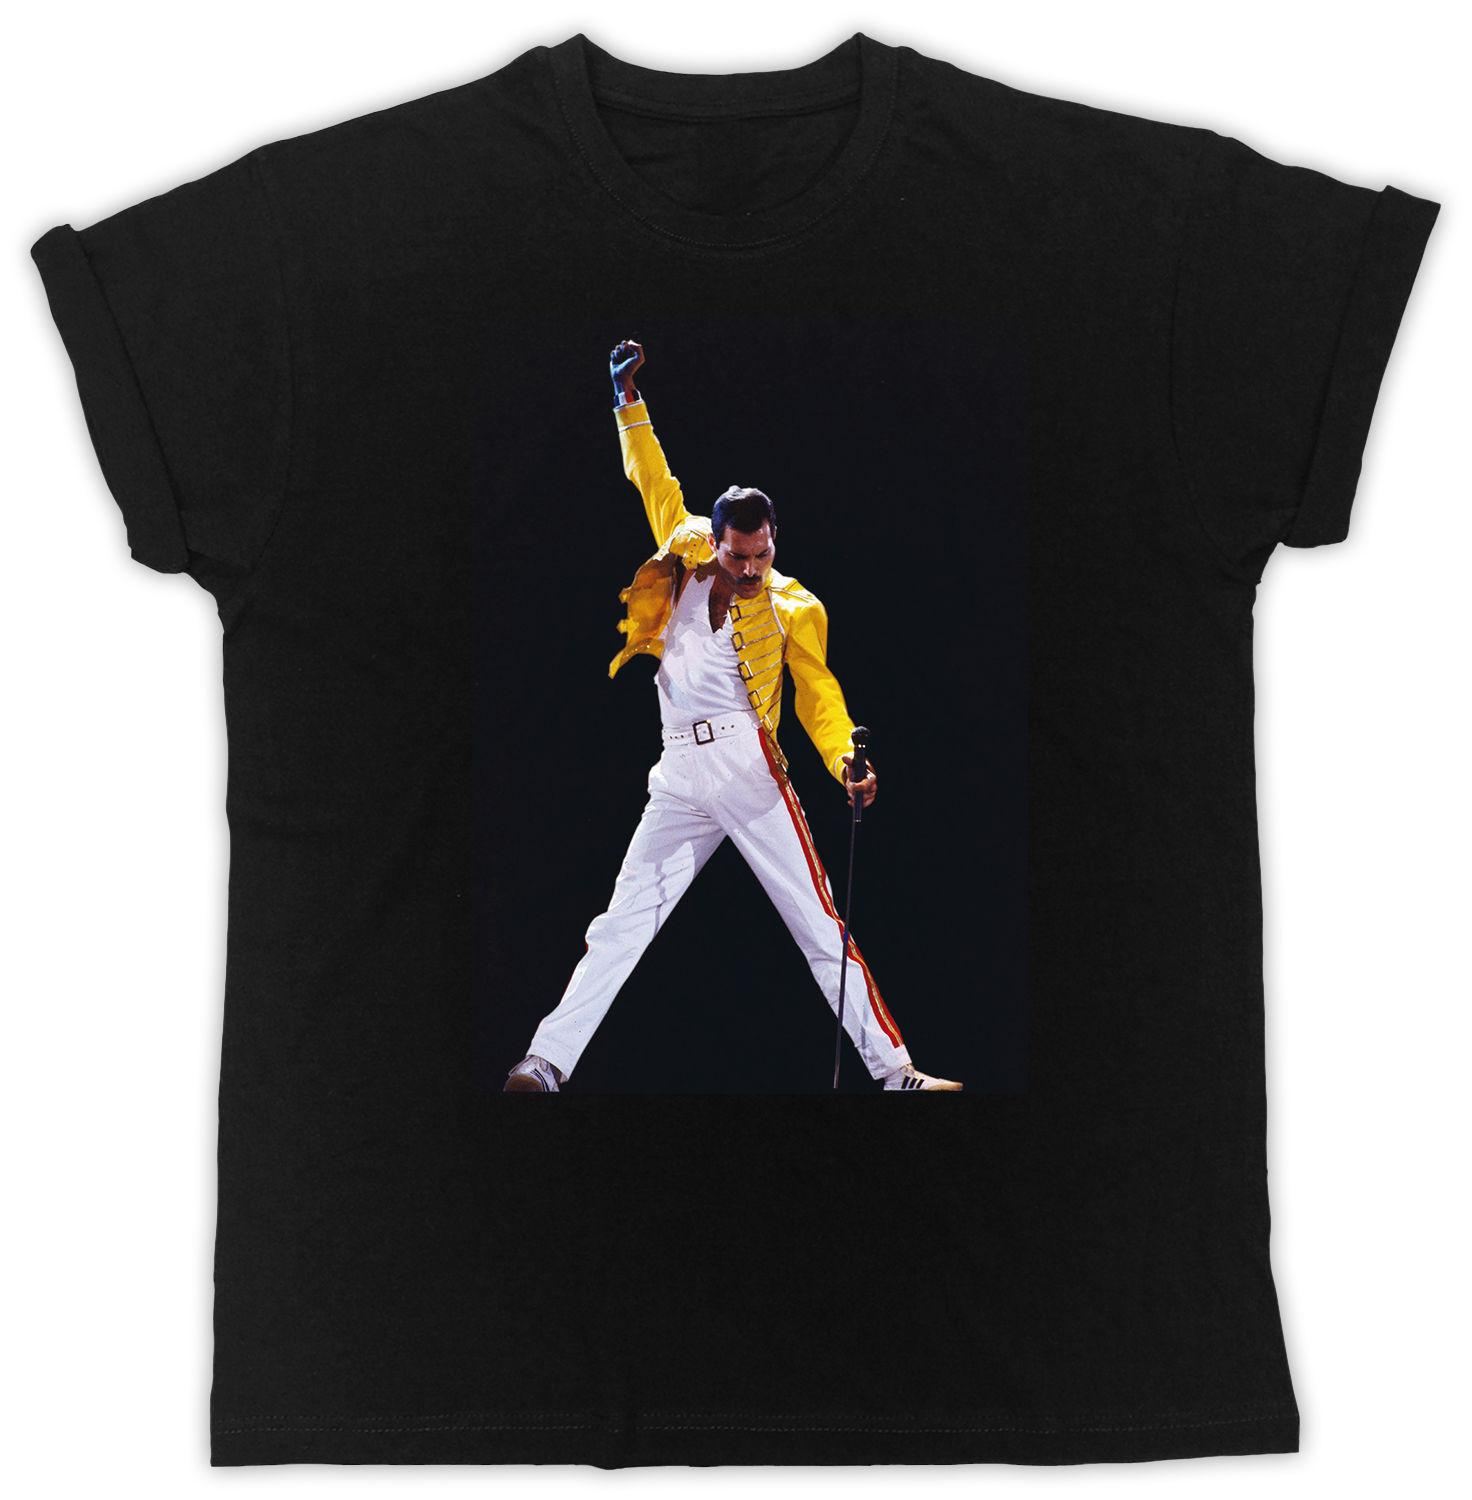 eb322319fac LOGO NEW 1FREDDIE MERCURY MIC T-SHIRT LEGEND COOL UNISEX CASUAL RETRO TEE  SHIRT Online with  13.54 Piece on Typesofshirts54 s Store